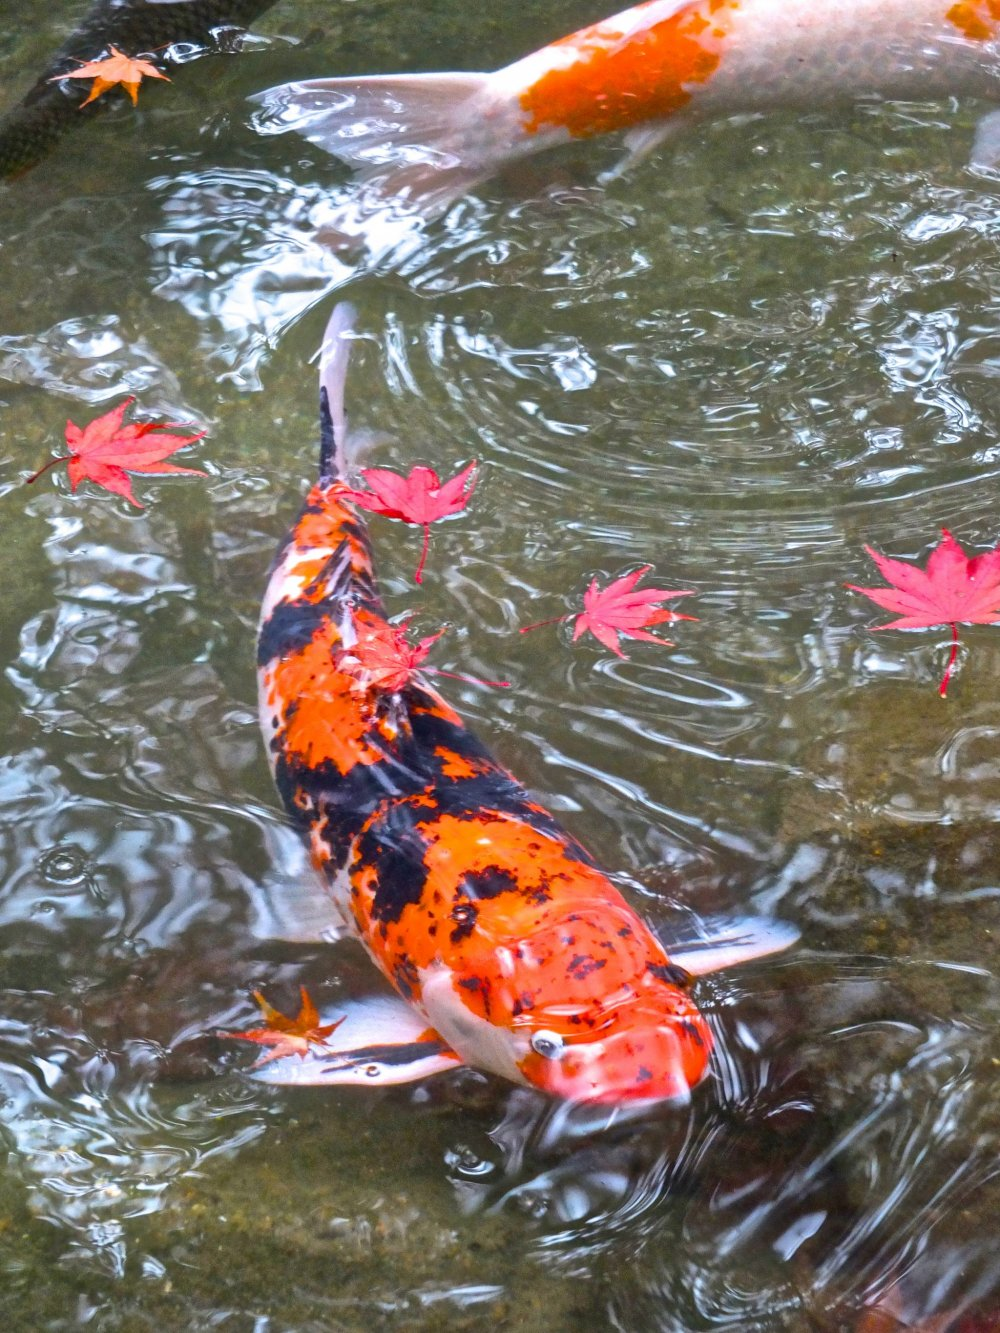 Momiji flutuando no lago de carpas do parque